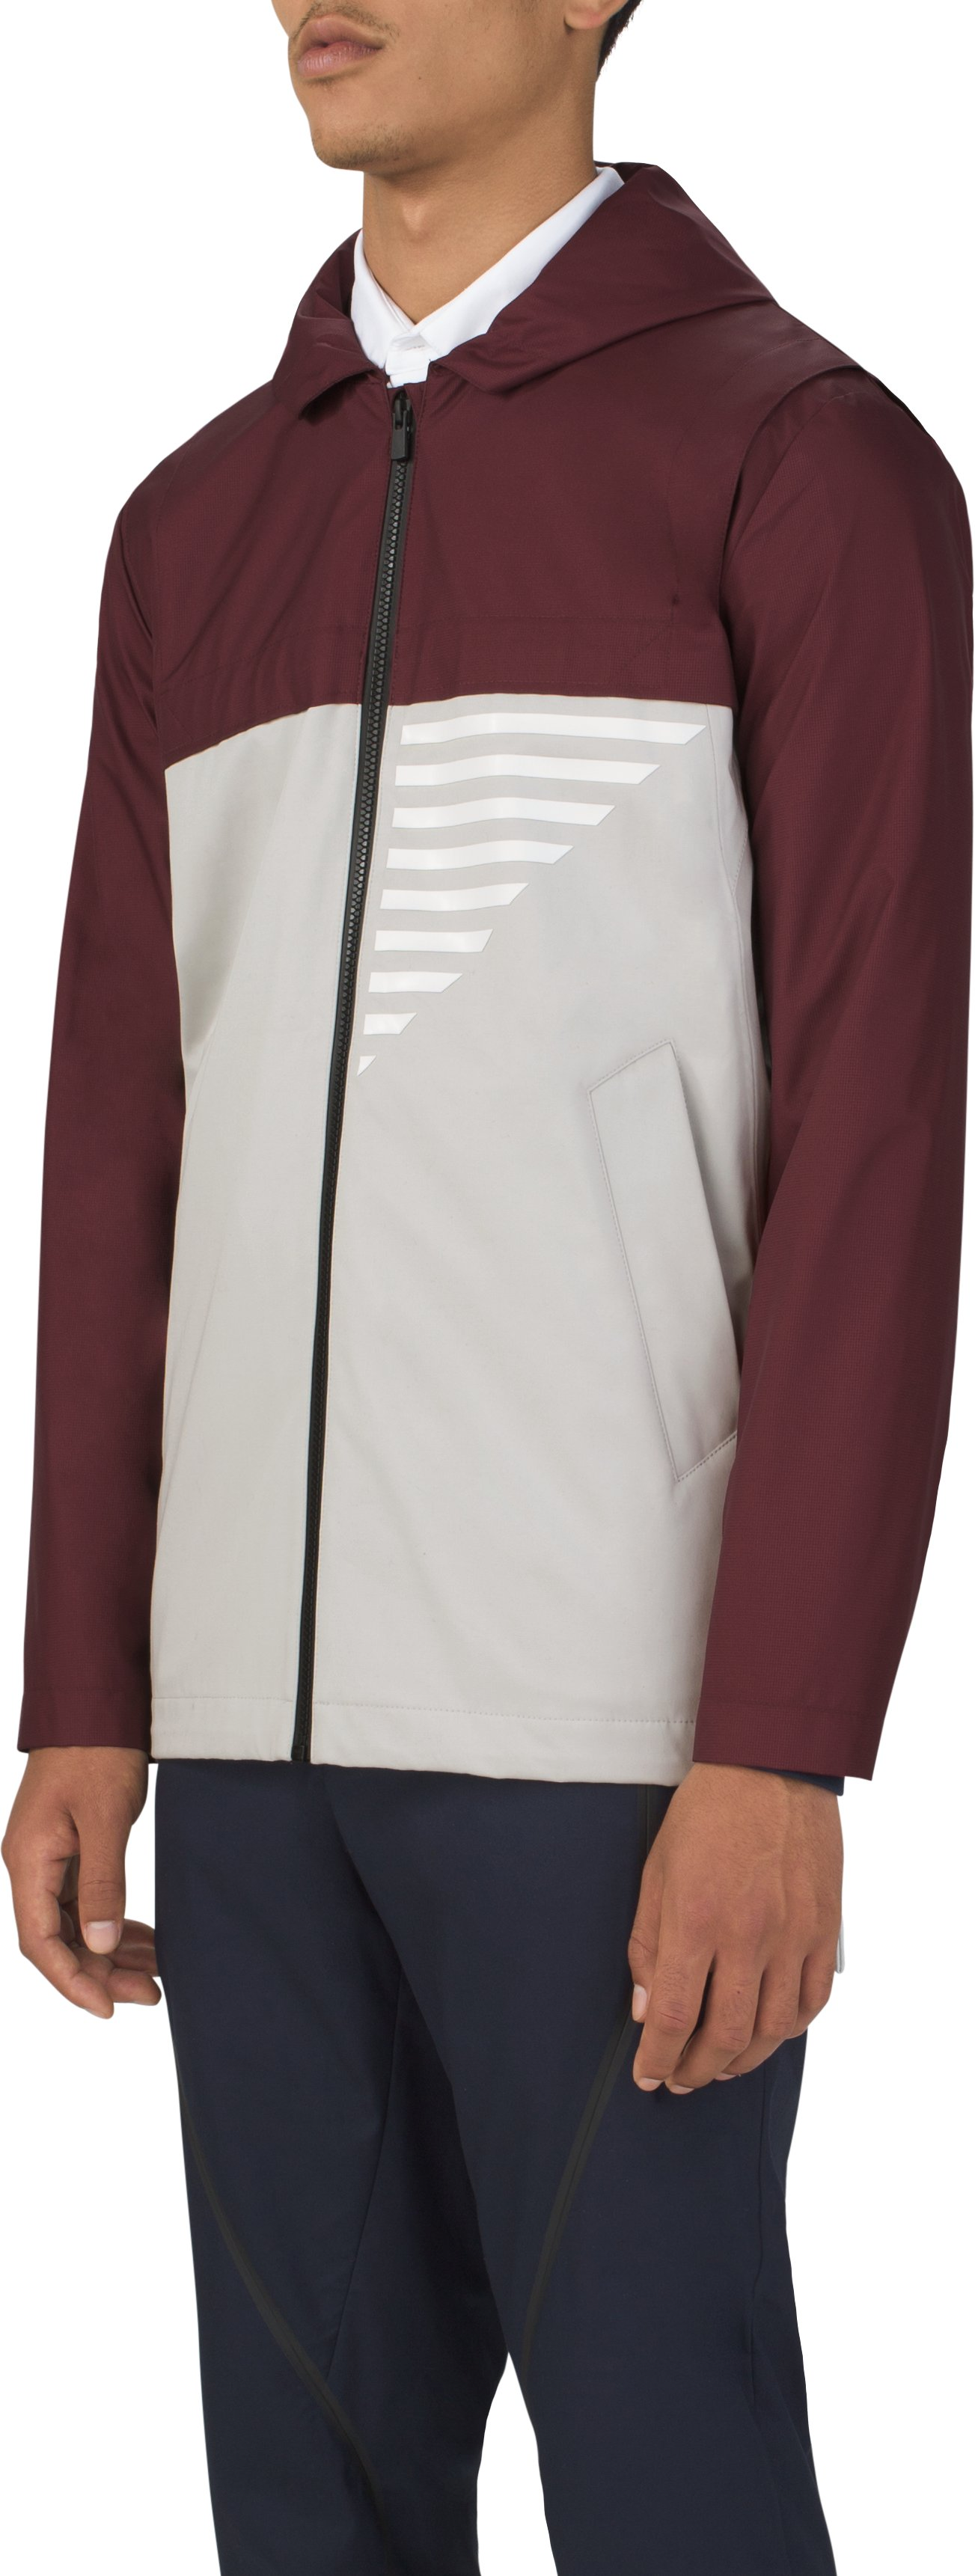 Men's UAS Coxswain Graphic Jacket, Burgundy